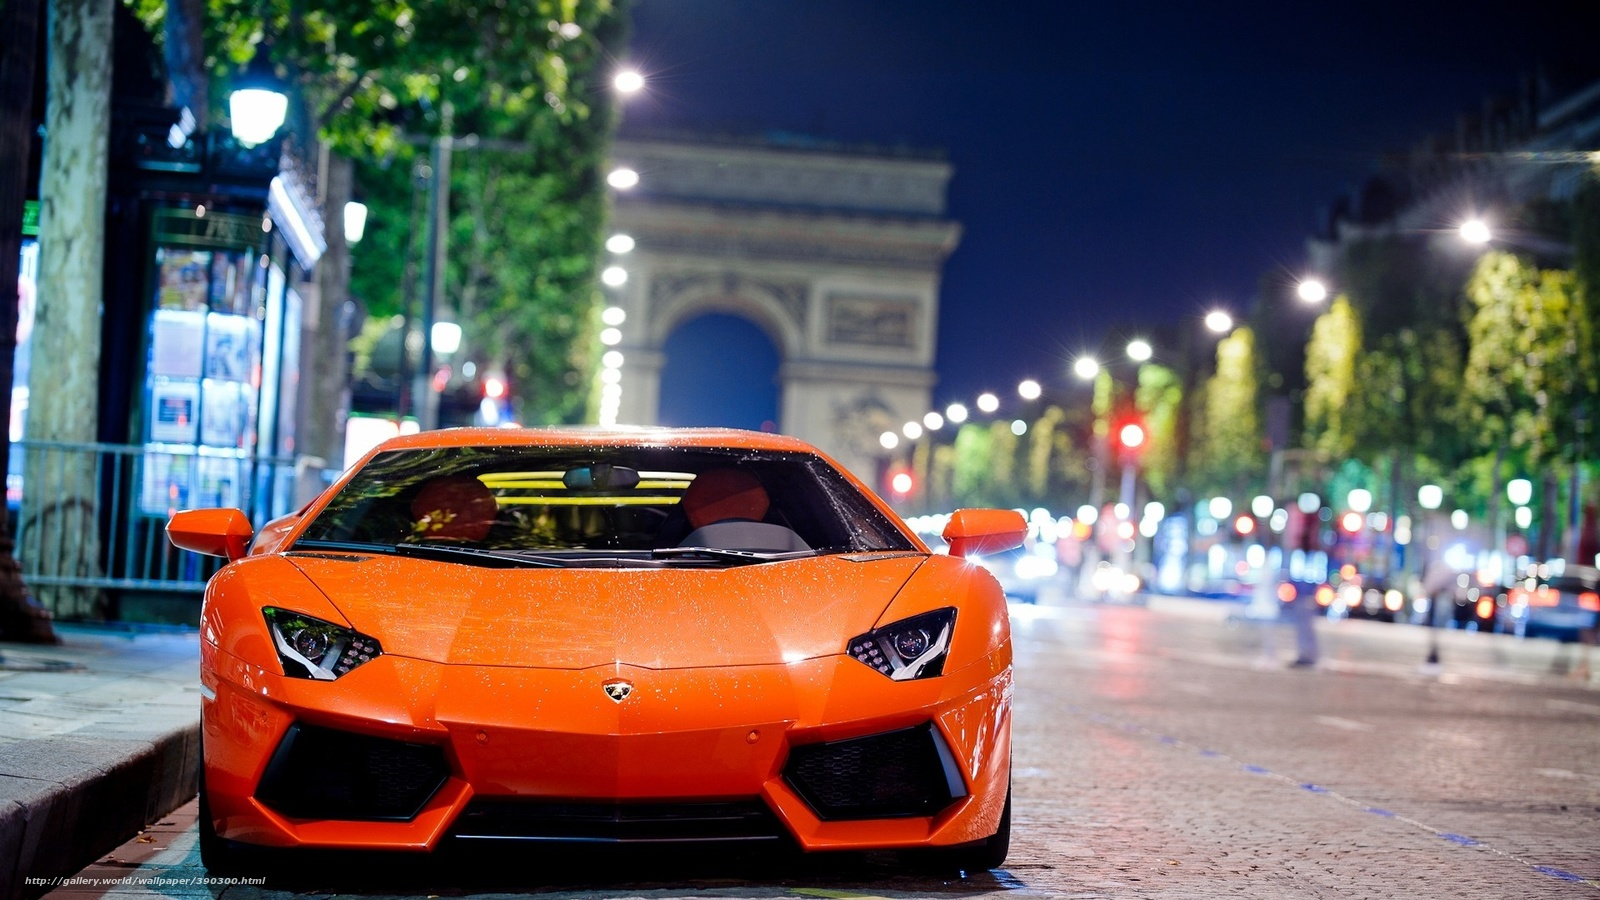 Download Wallpaper Car City Lights Cars Free Desktop Wallpaper In The Resolution 1920x1080 Picture 390300